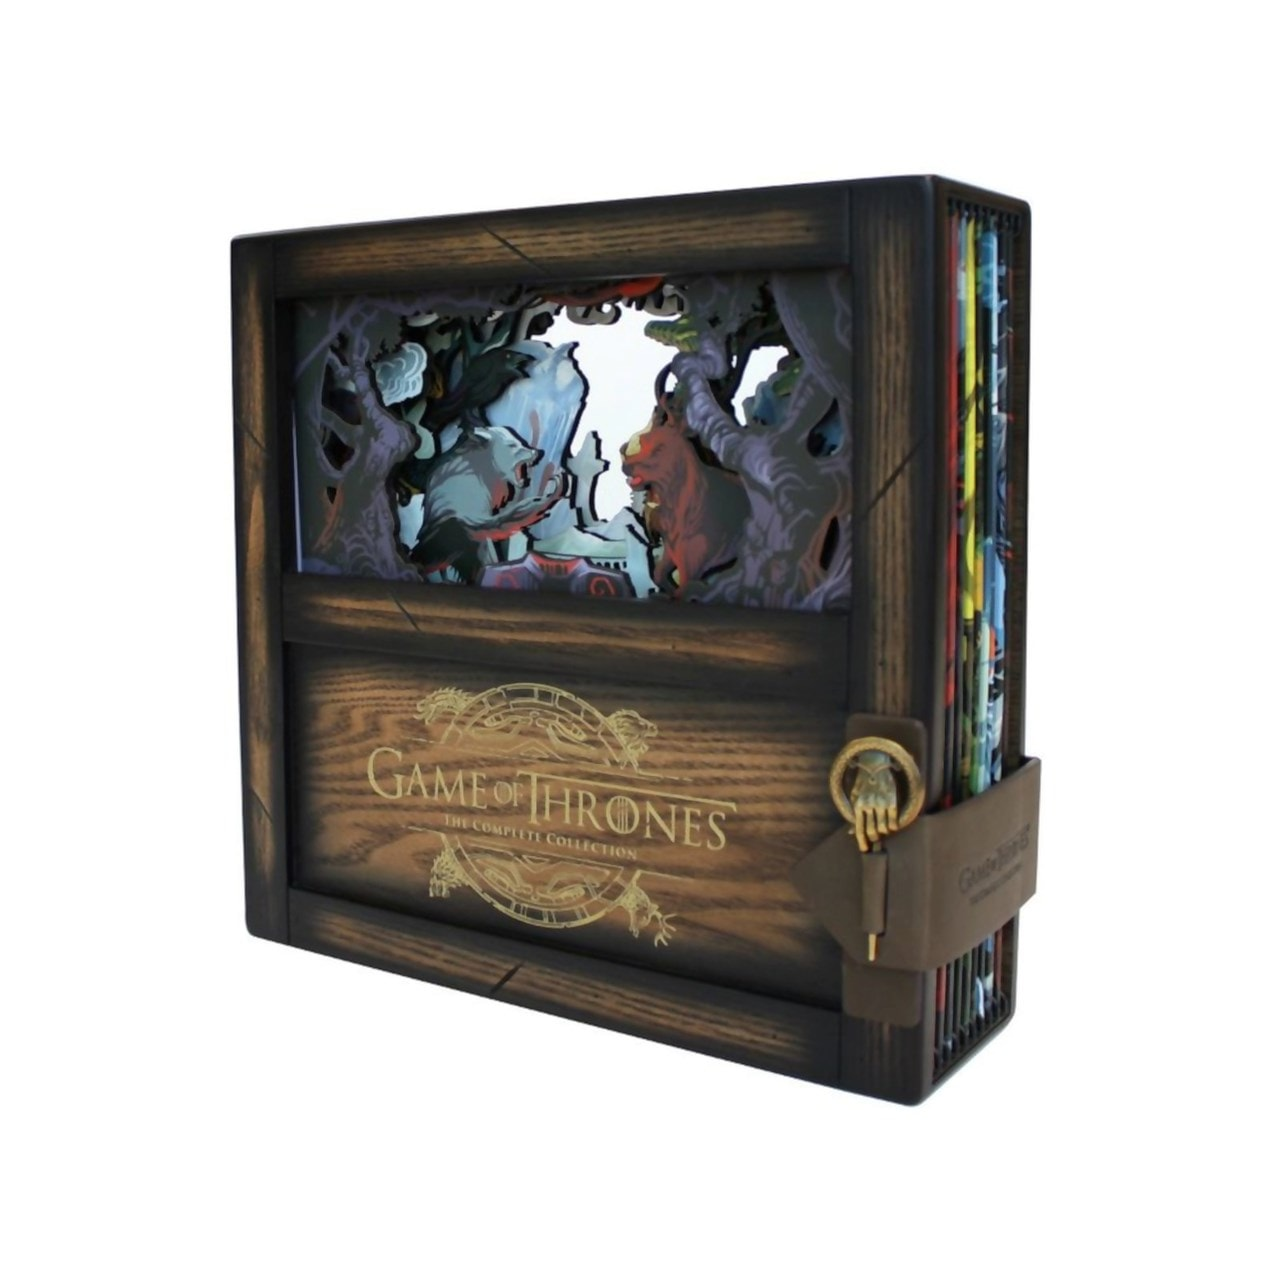 Game of Thrones: The Complete Series Limited Collector's Edition - 3